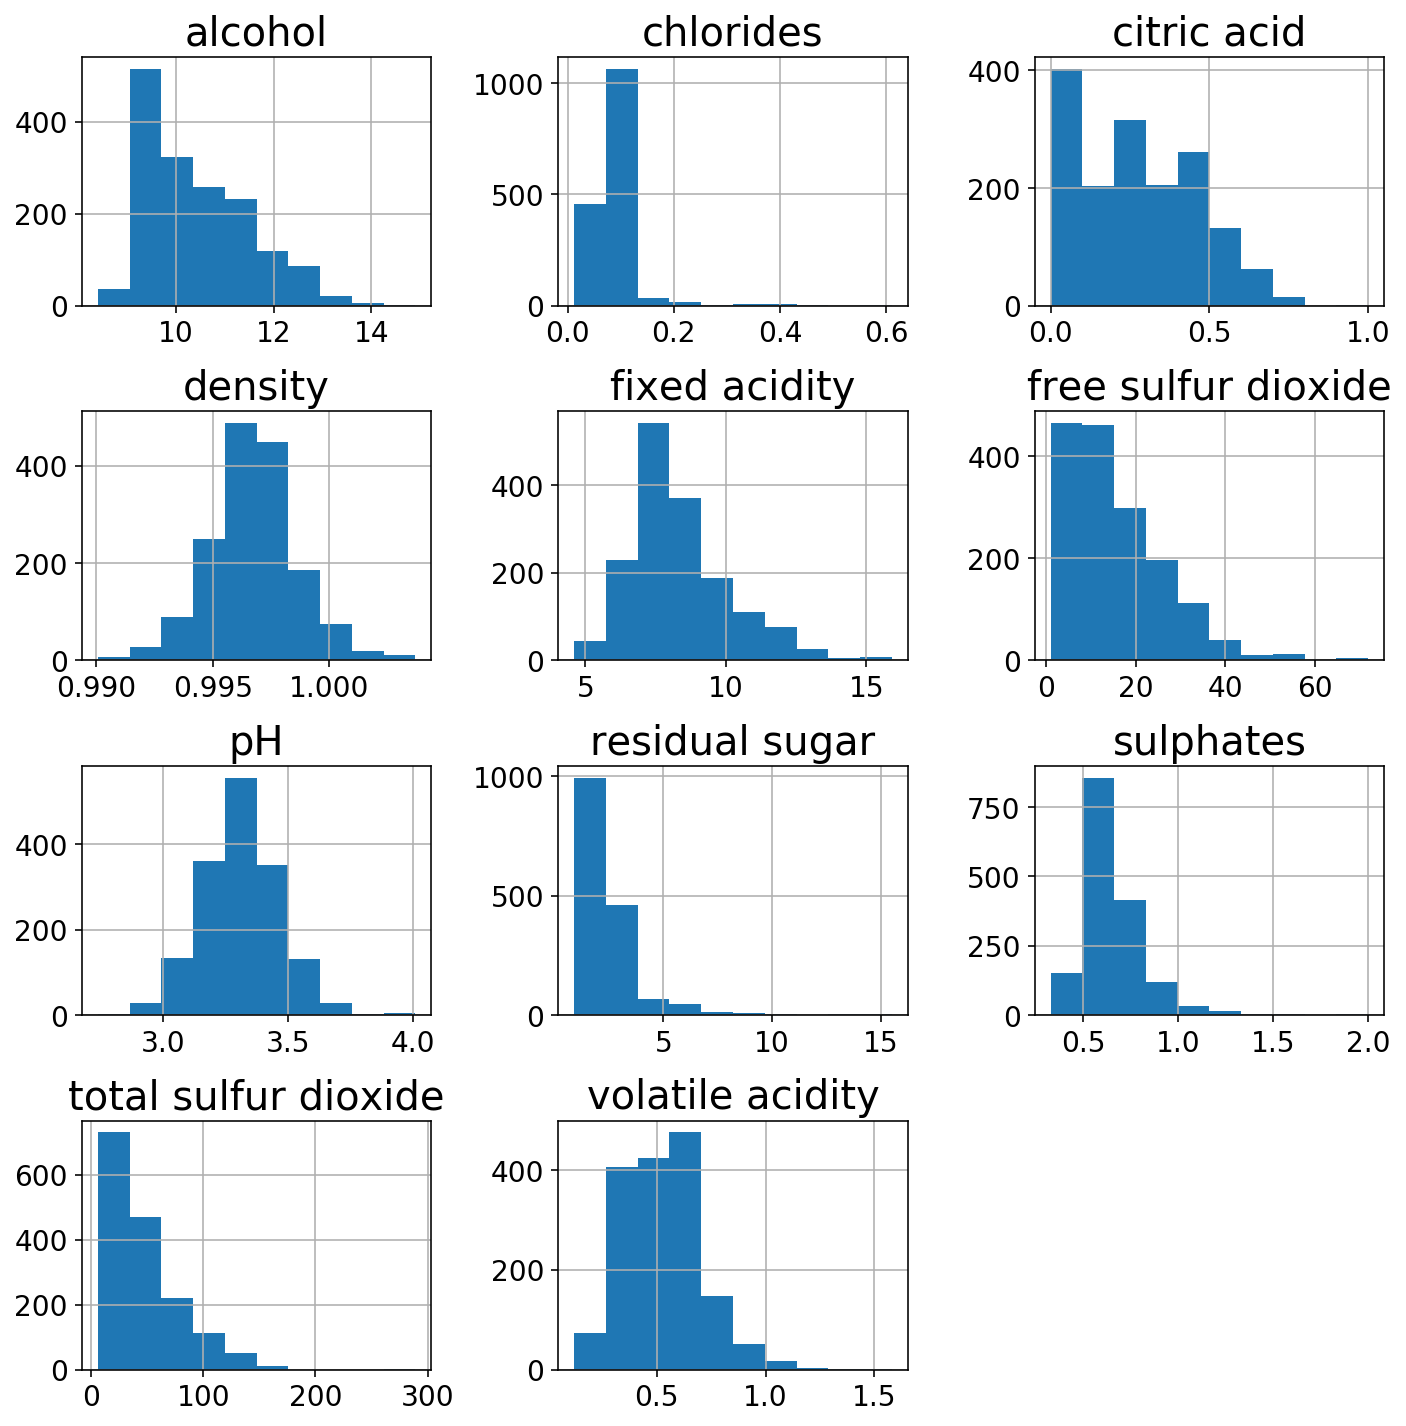 spacecutter: Ordinal Regression Models in PyTorch   Ethan Rosenthal